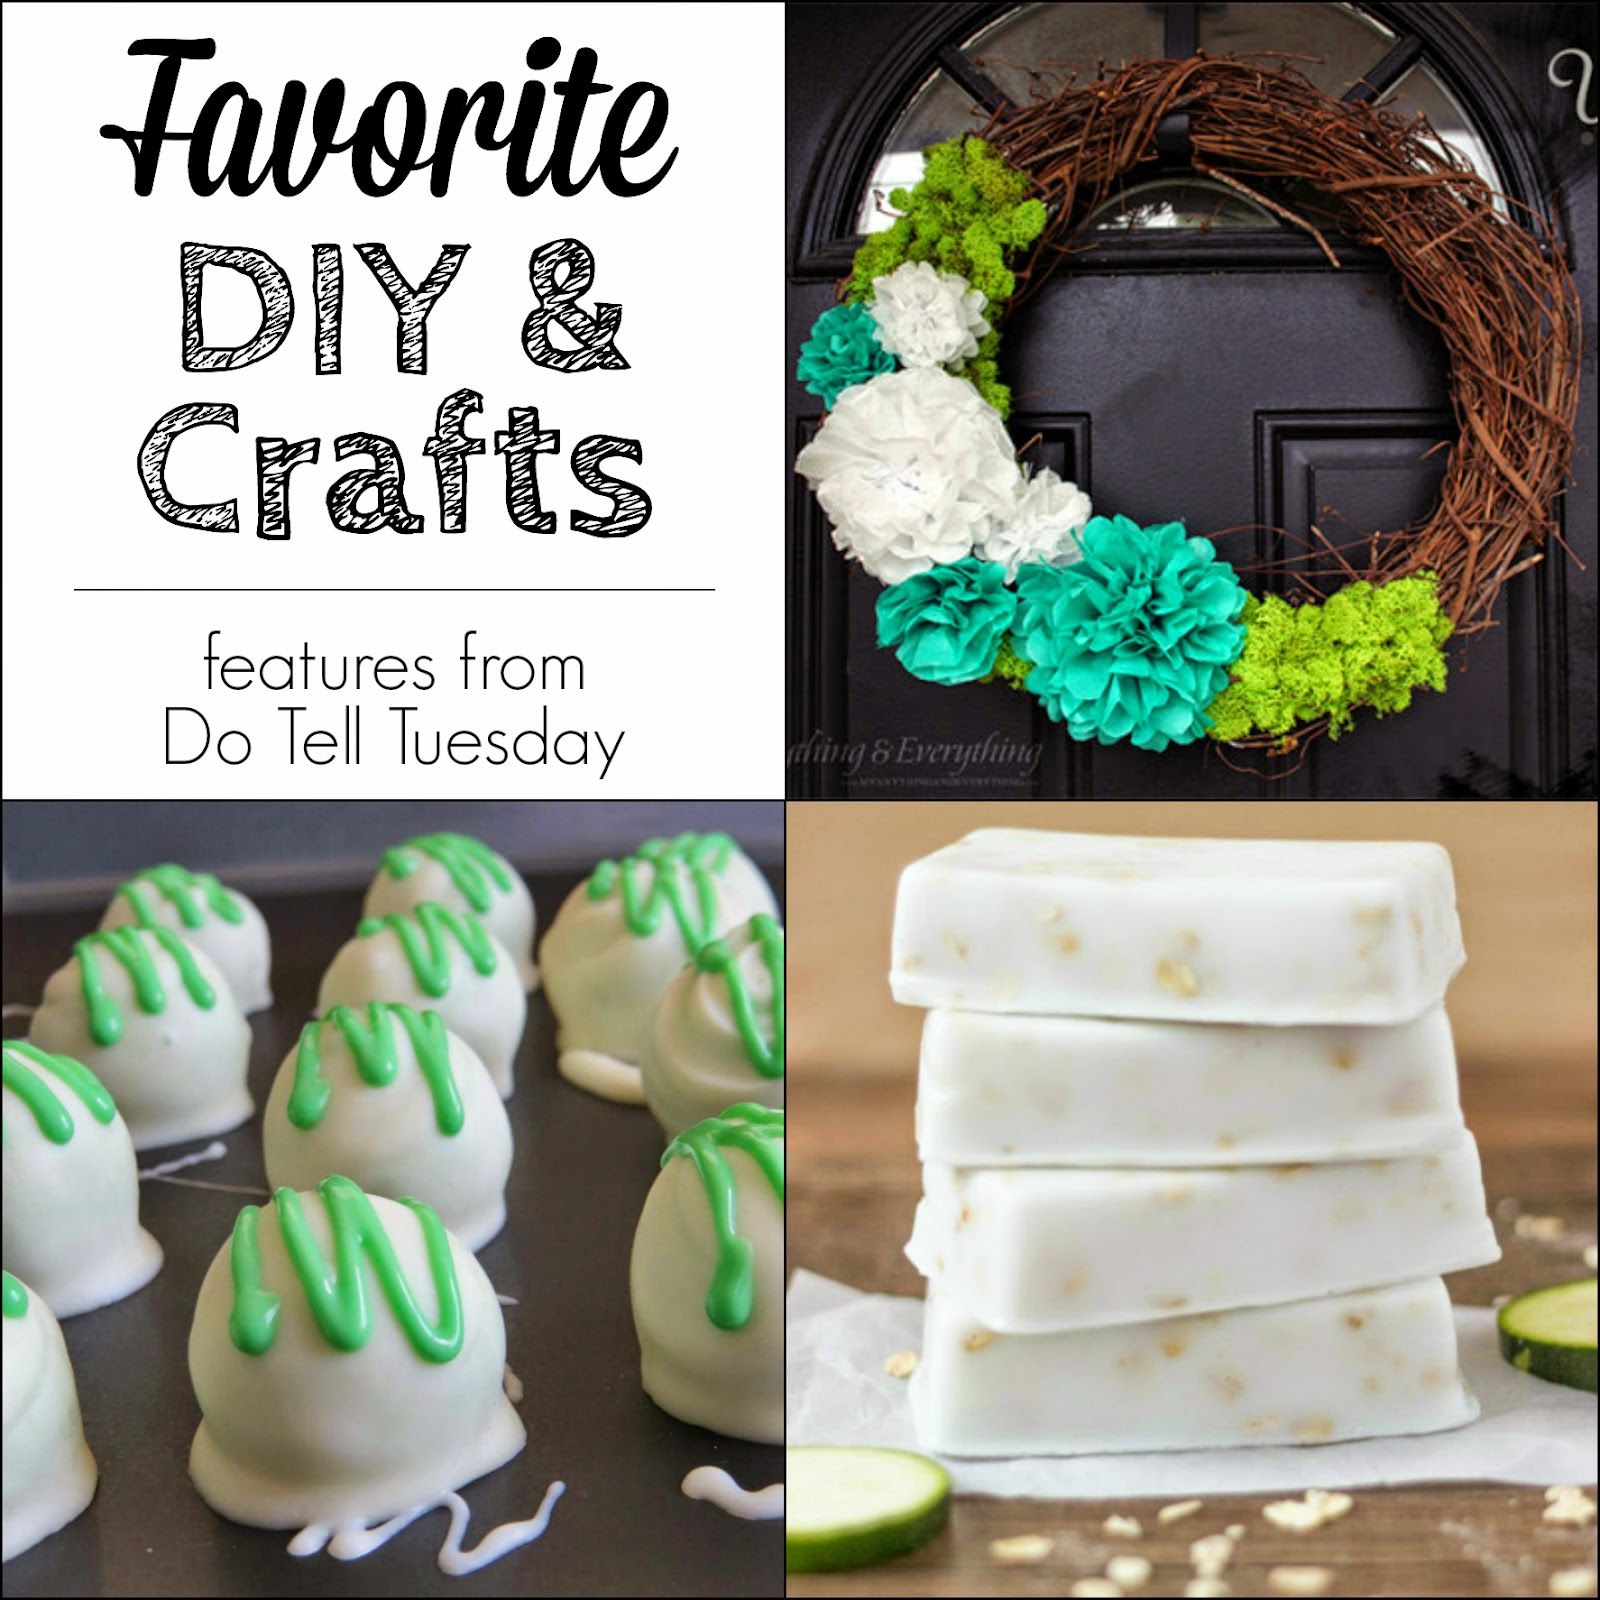 Favorite DIY & Crafts at Diane's Vintage Zest!